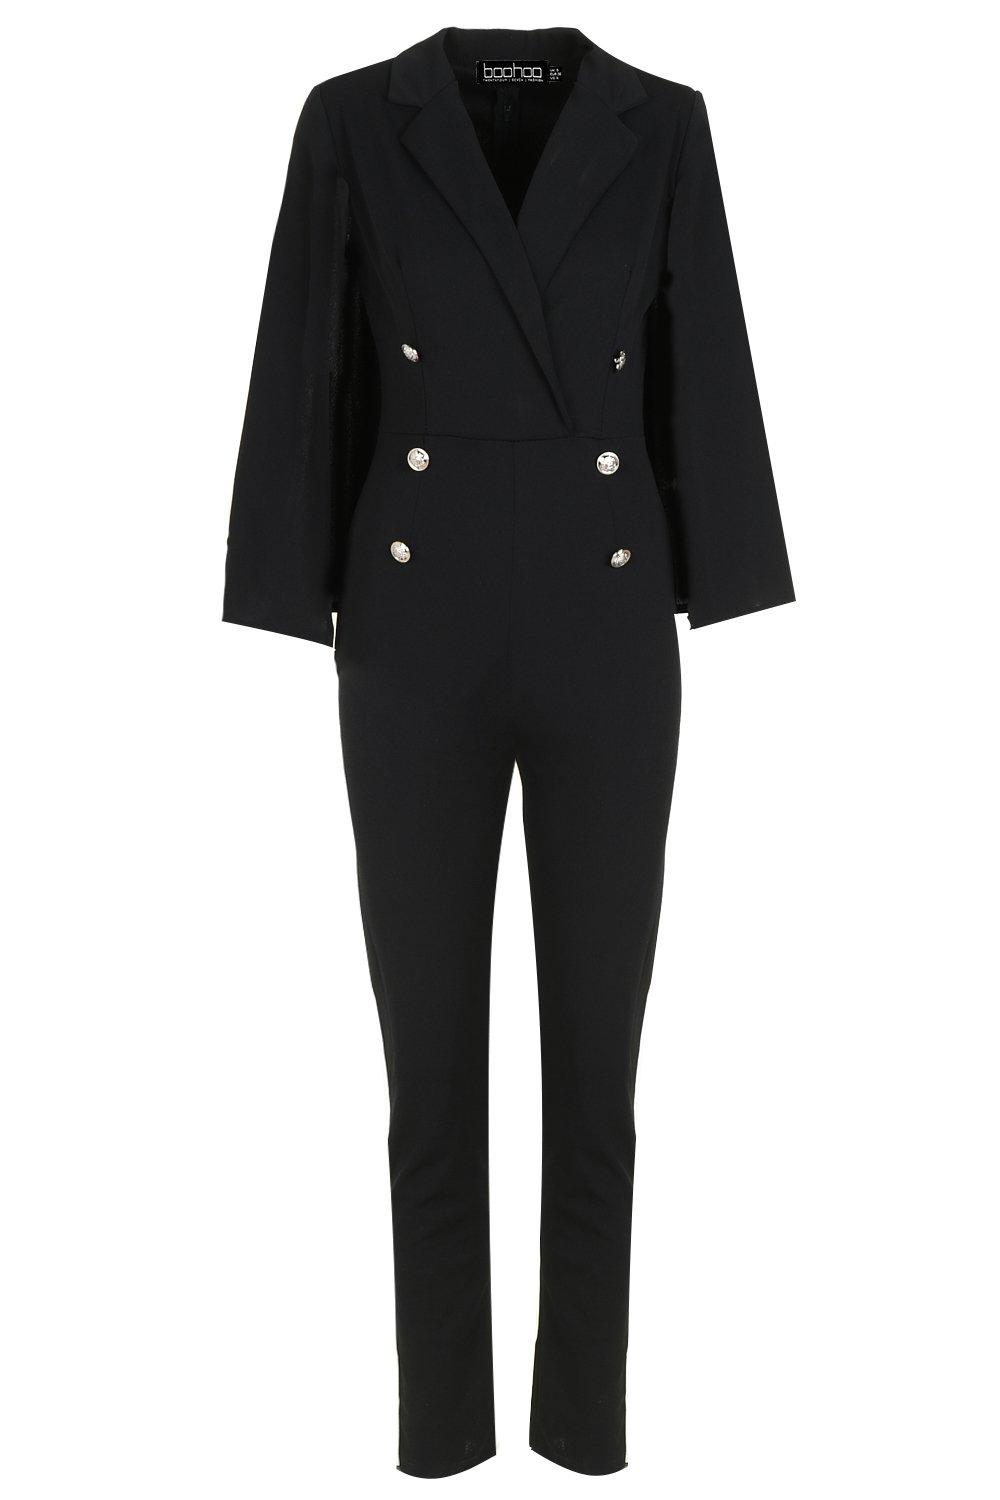 Military Caped Jumpsuit Caped Military Jumpsuit black 5gxFvwt